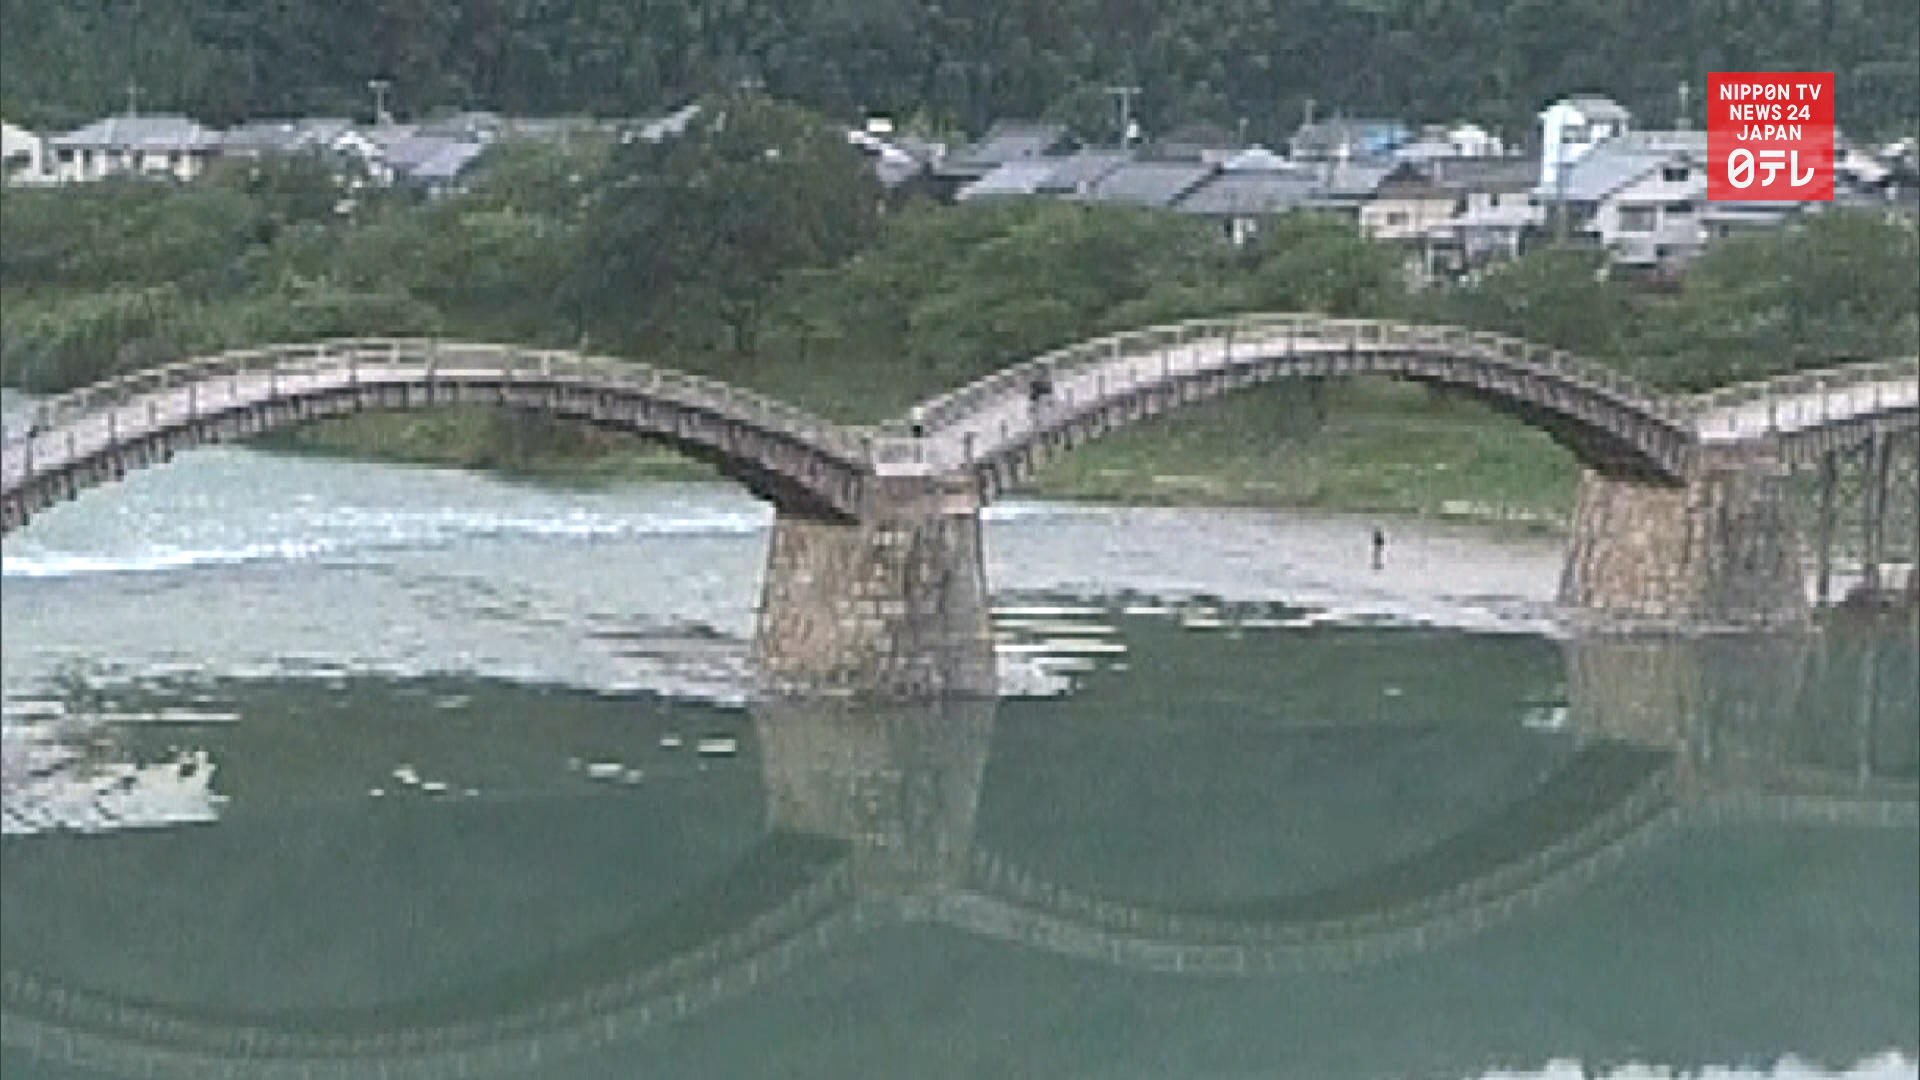 Man arrested for riding motorbike on Japan's scenic bridge